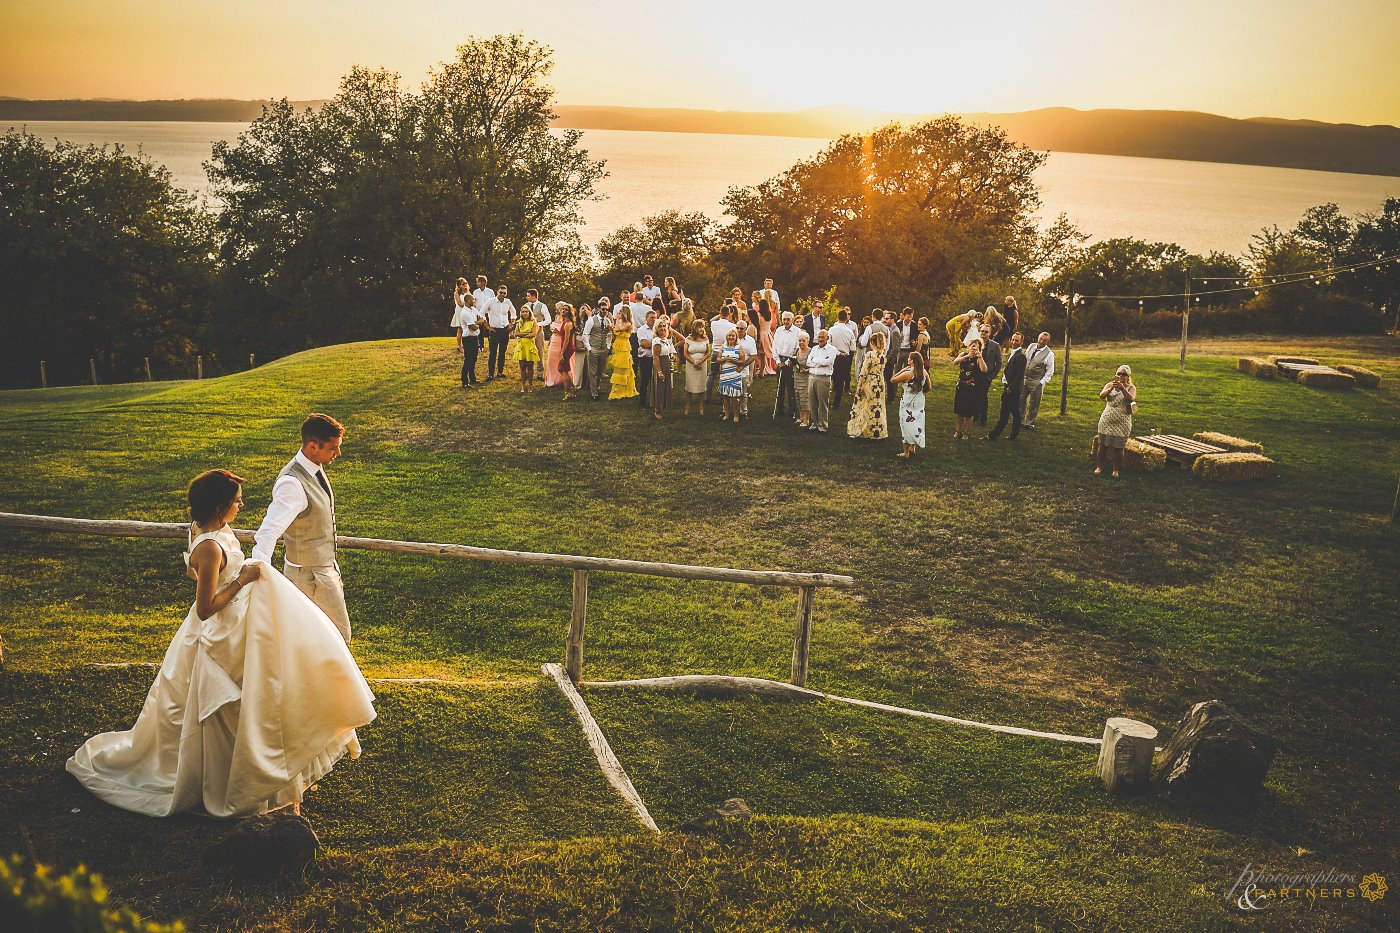 wedding_photos_lago_bracciano_18.jpg